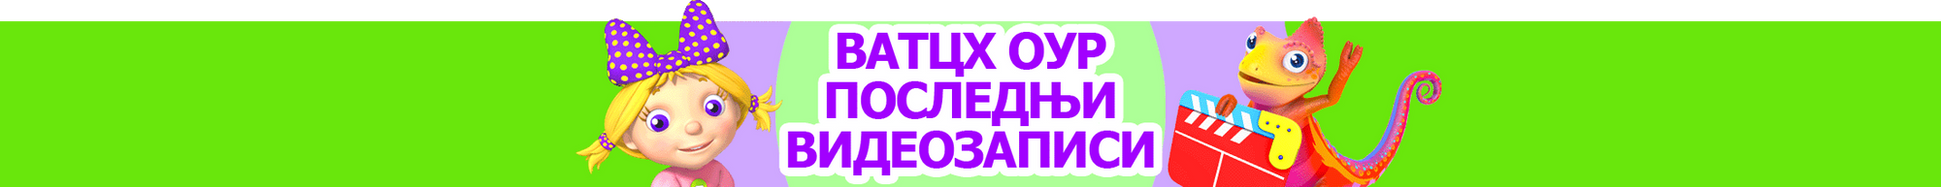 watch-our-latest-videos-banner.png